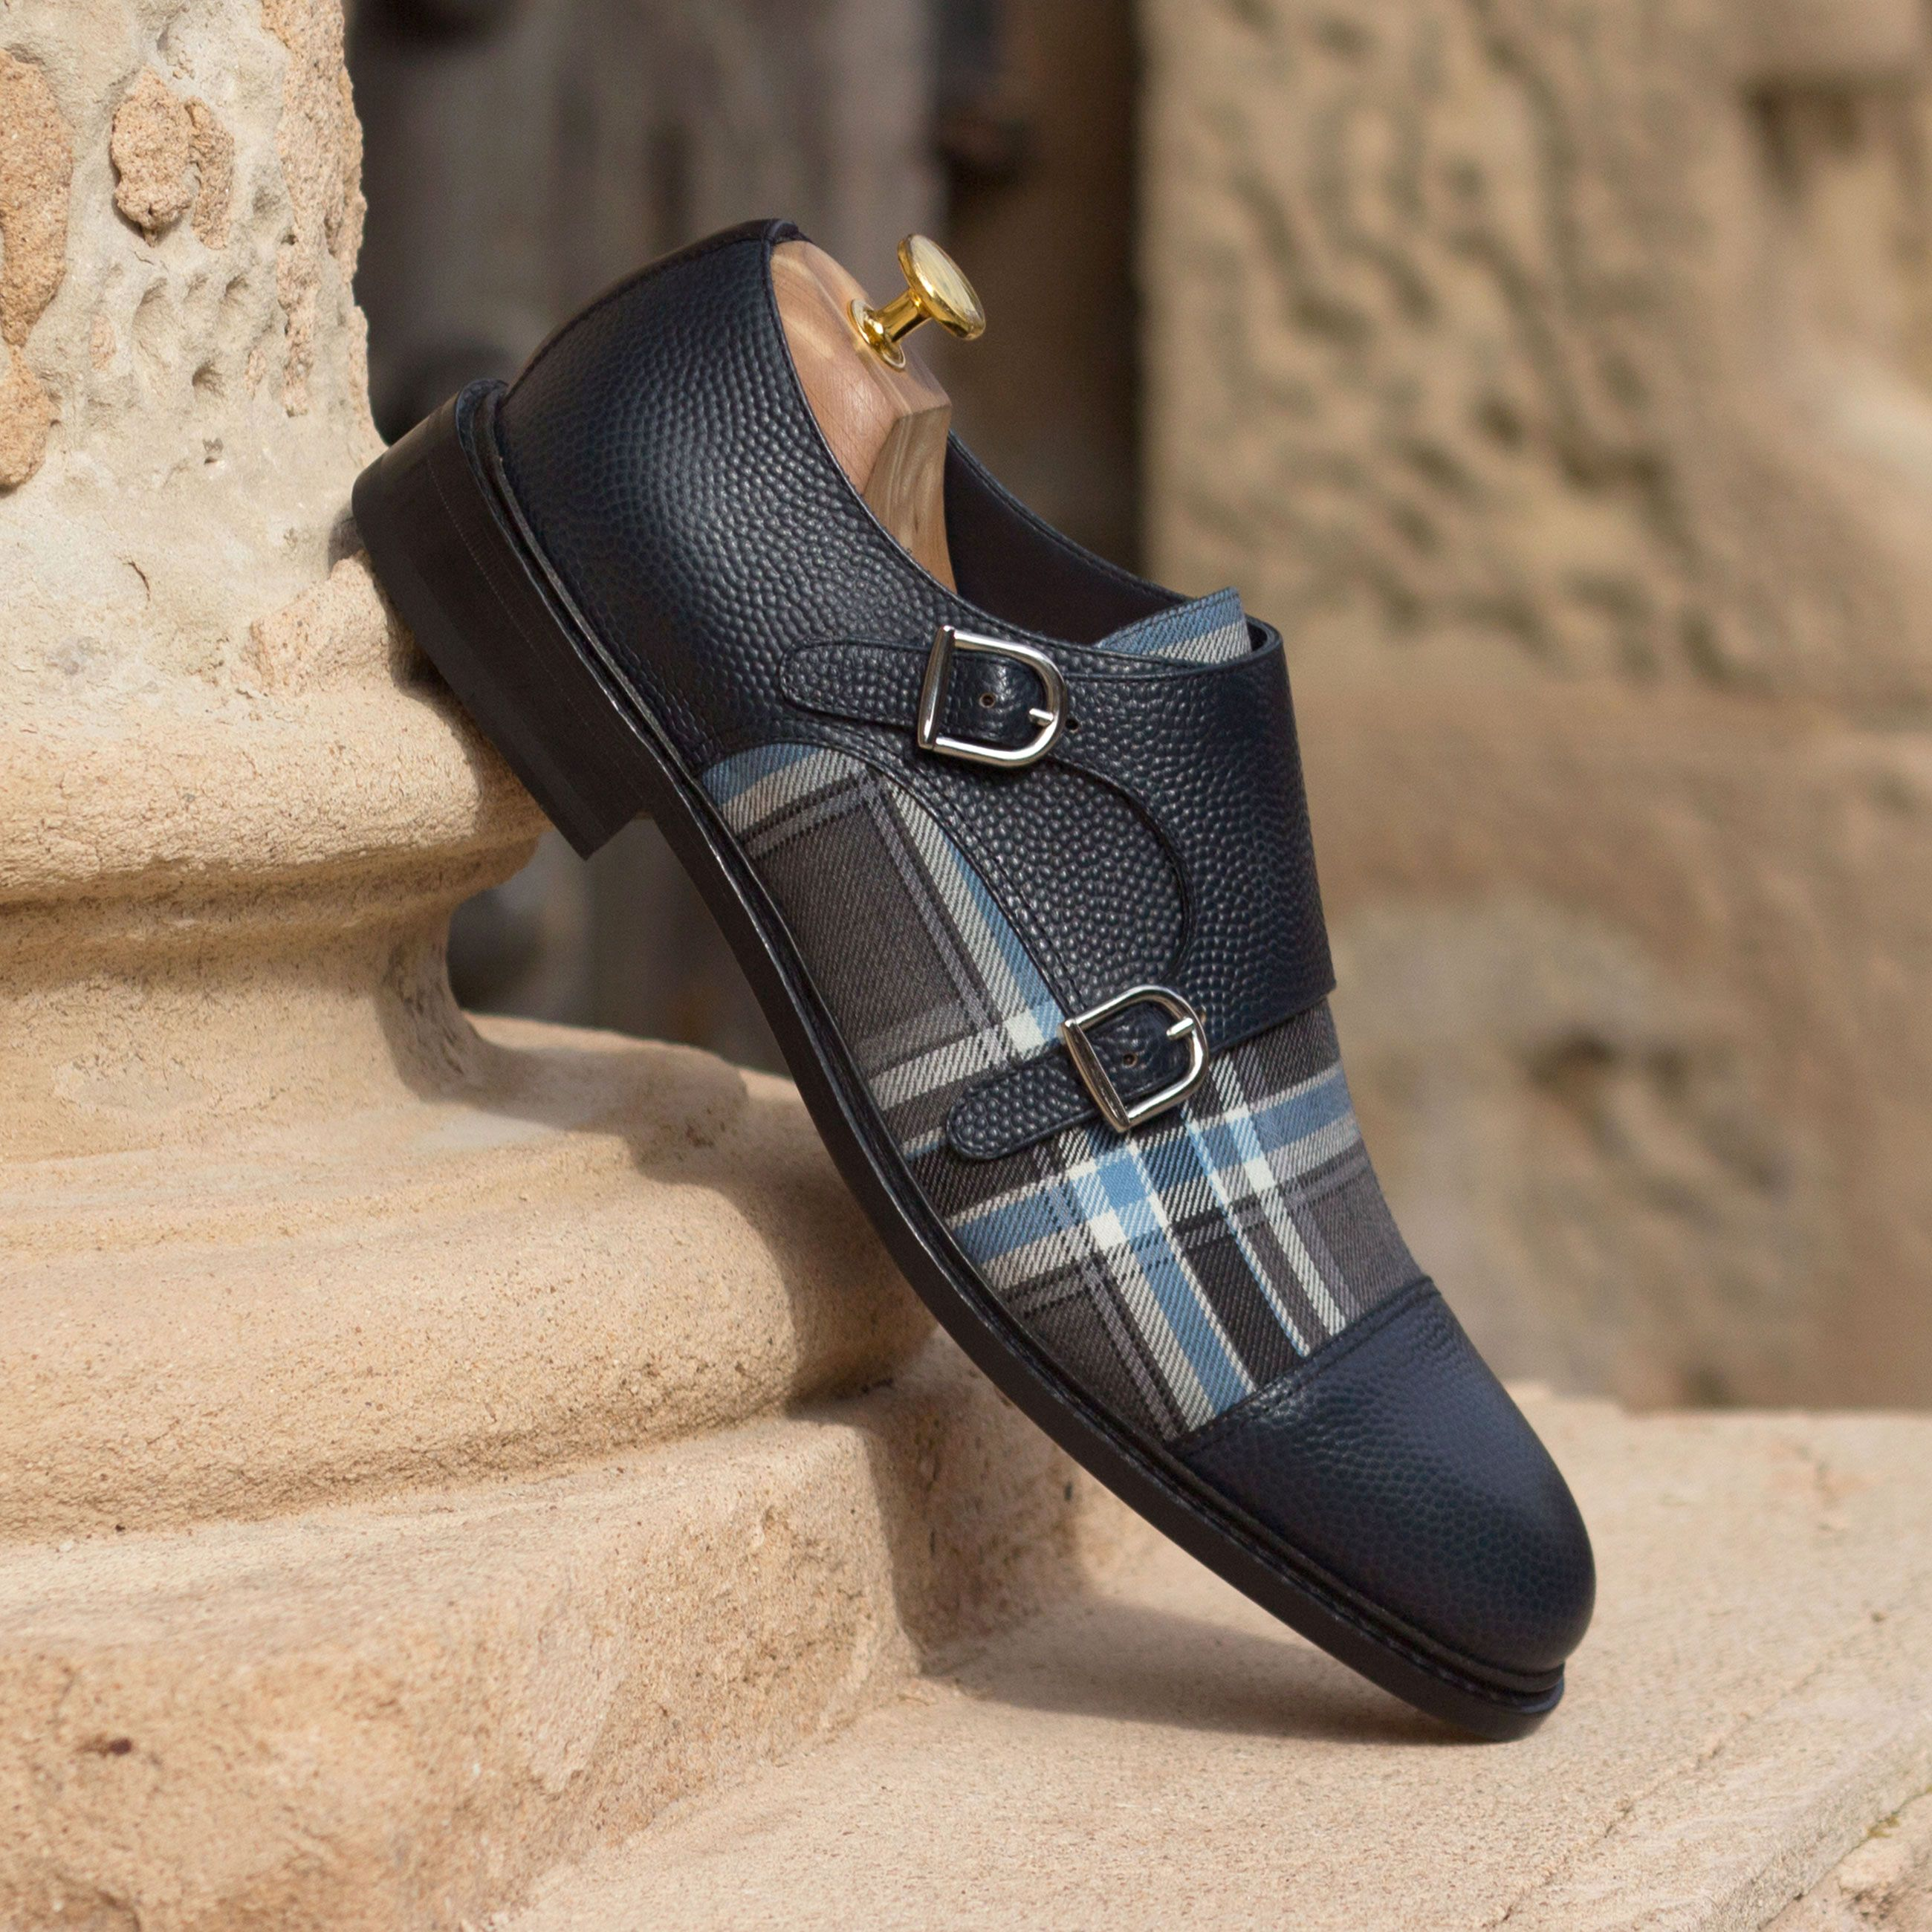 5b13260e459dc The Double Monk in Navy Blue Pebble Grain Leather with Plaid and ...